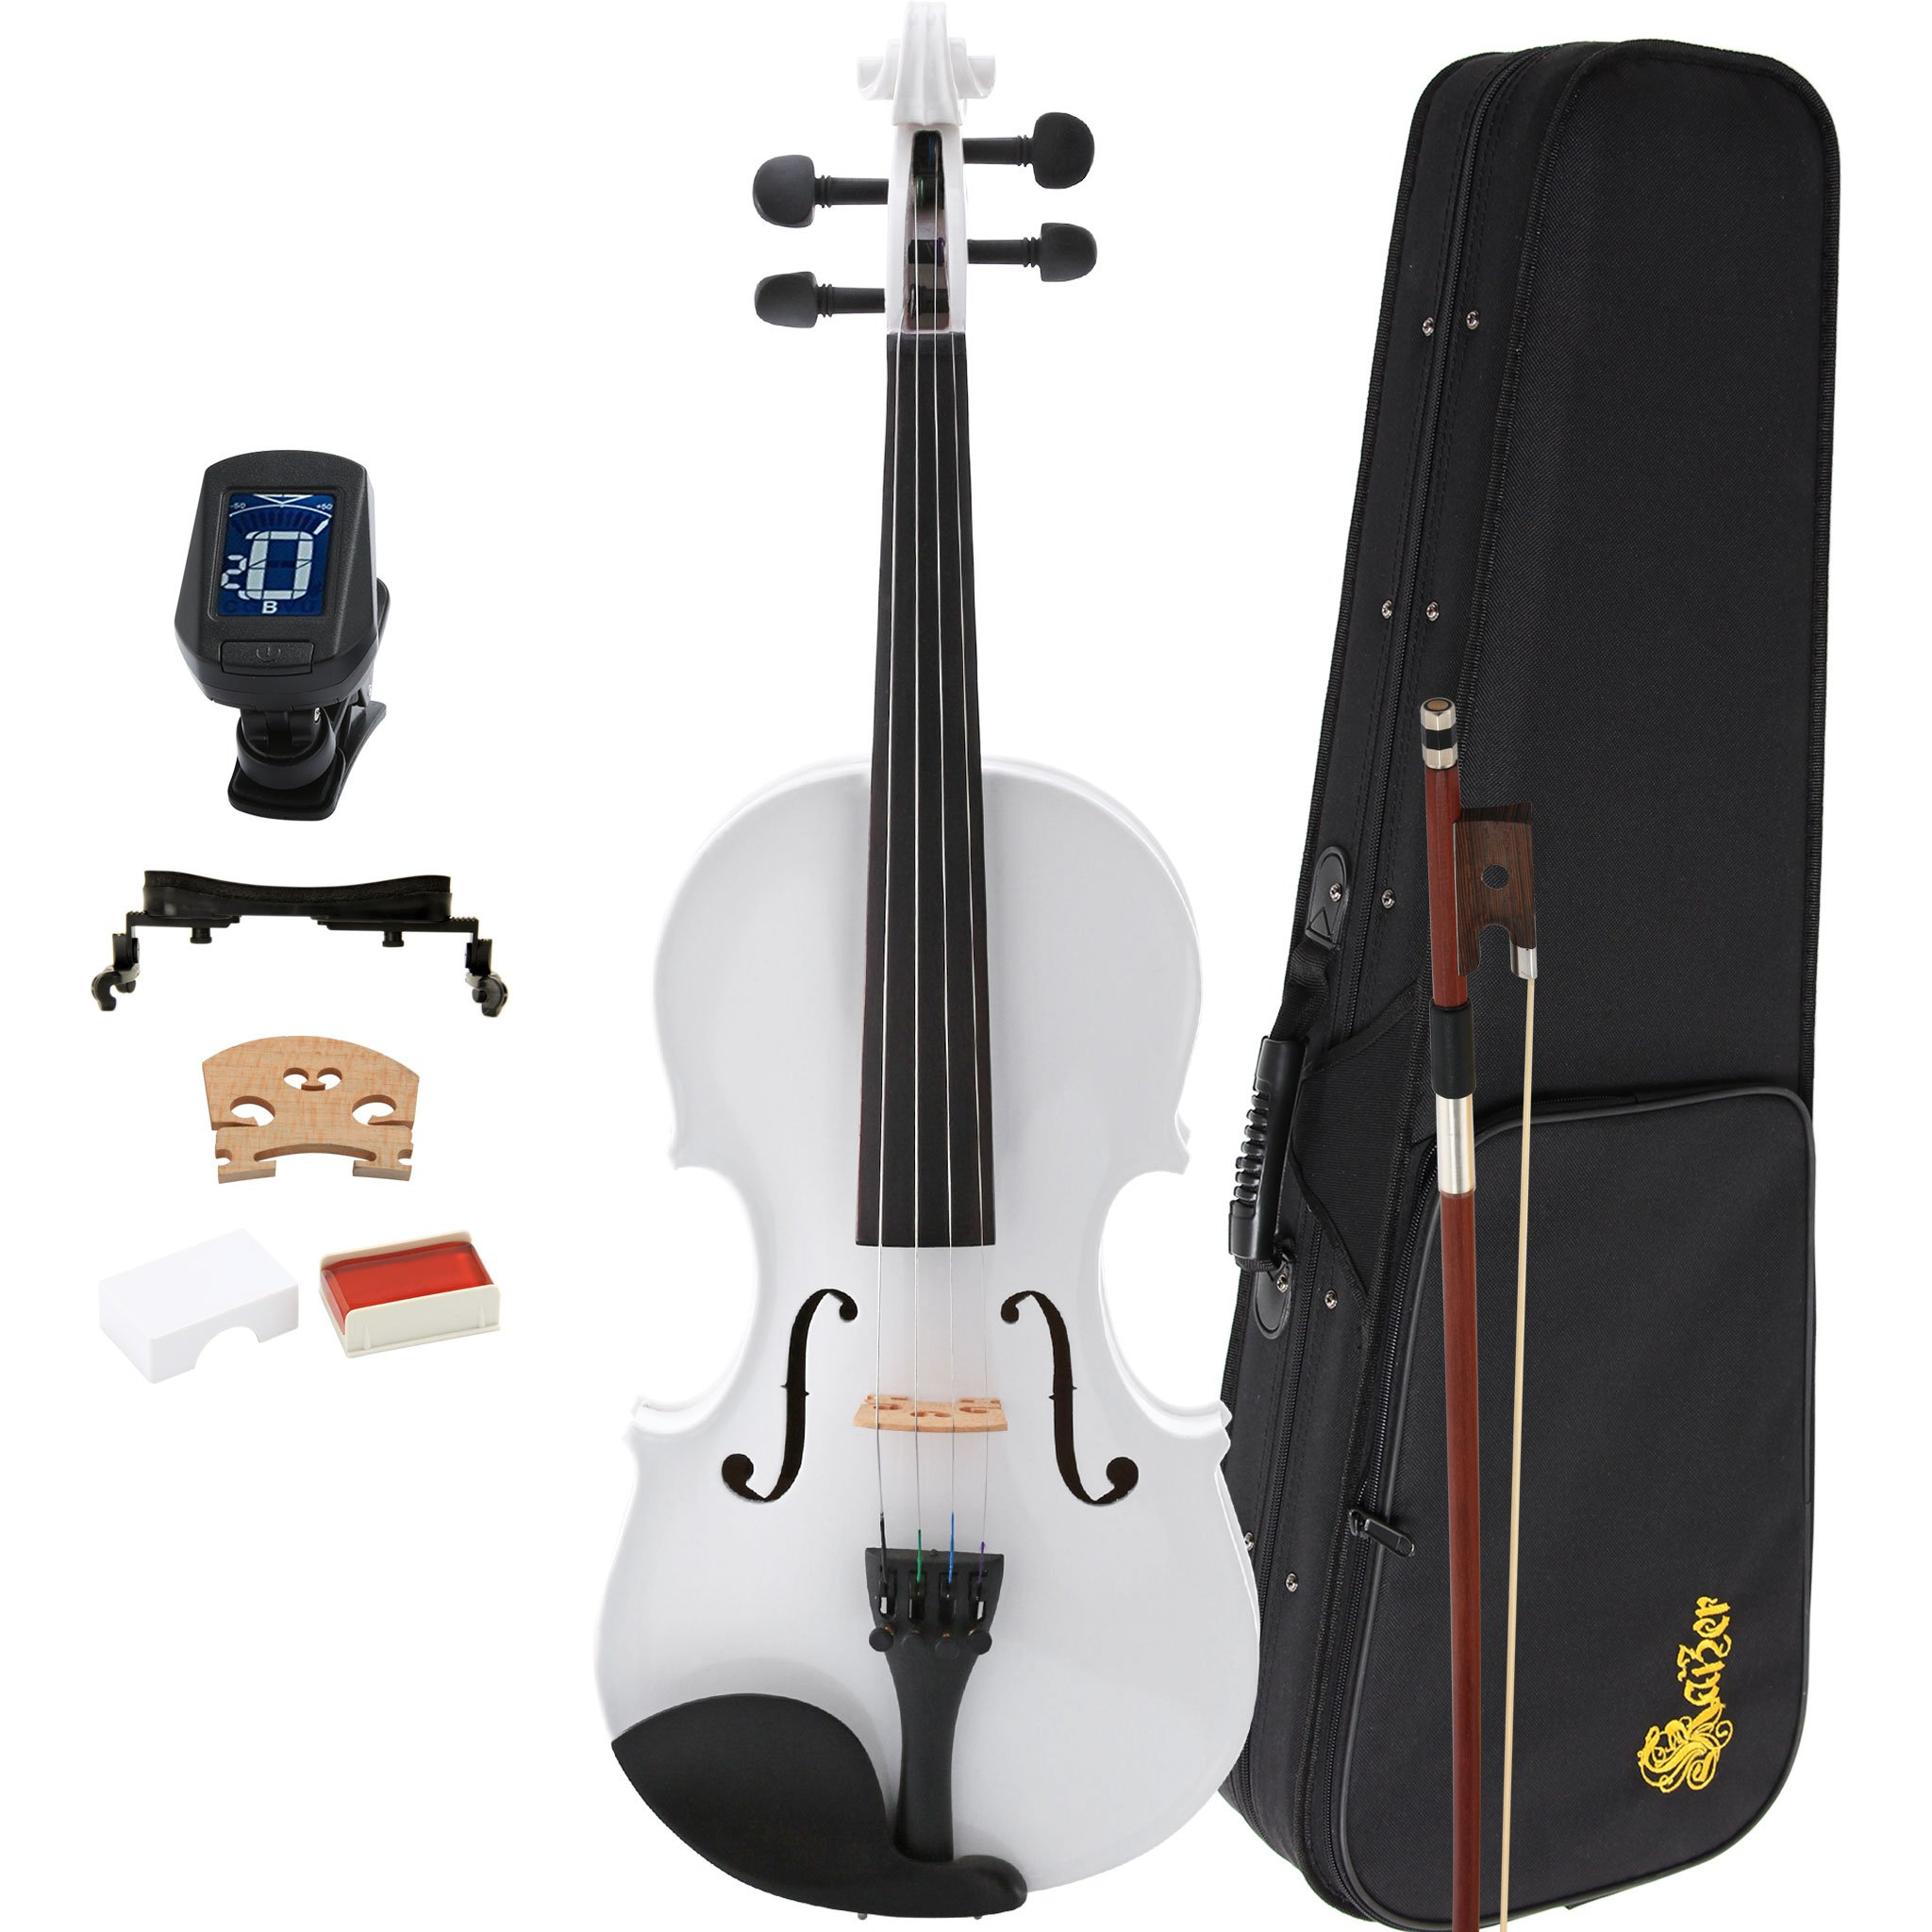 Kaizer Violin Acoustic Full Size 4/4 White Varnished Includes Case Bow Tuner and Accessories VLN-1000WH-4/4-TNR